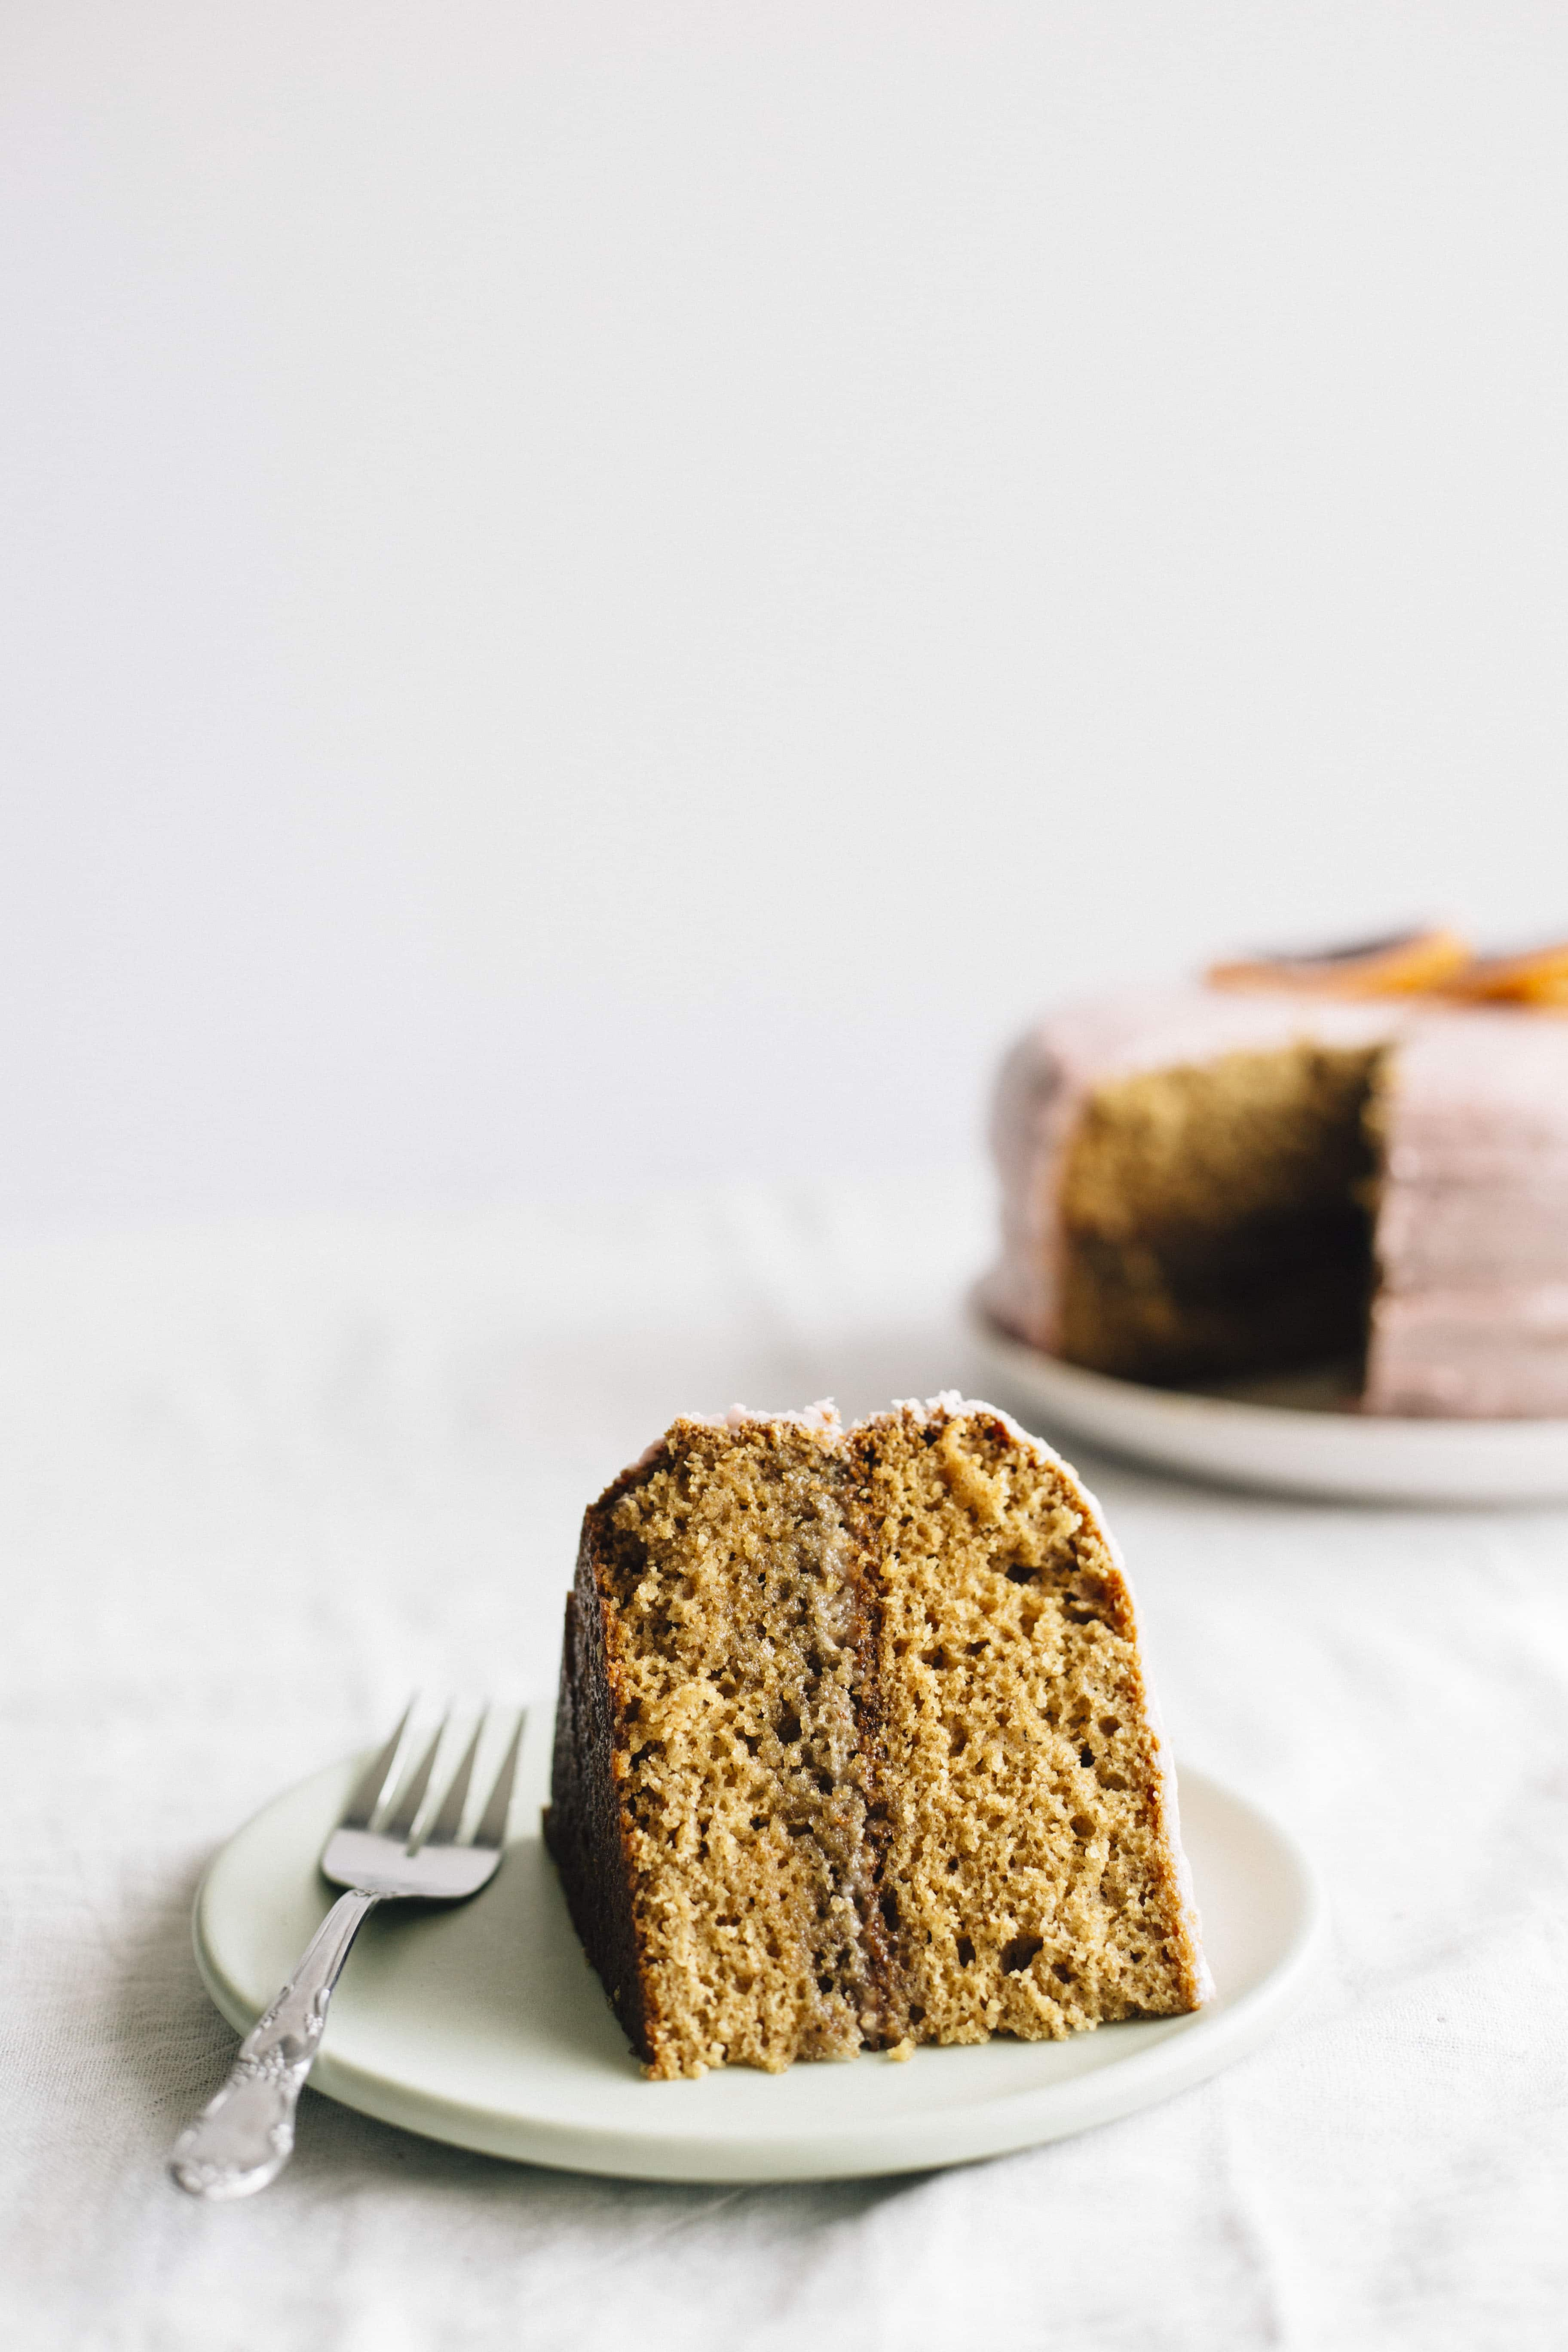 Vanilla blood orange cake made with healthy substitutions like coconut oil and applesauce--super moist!